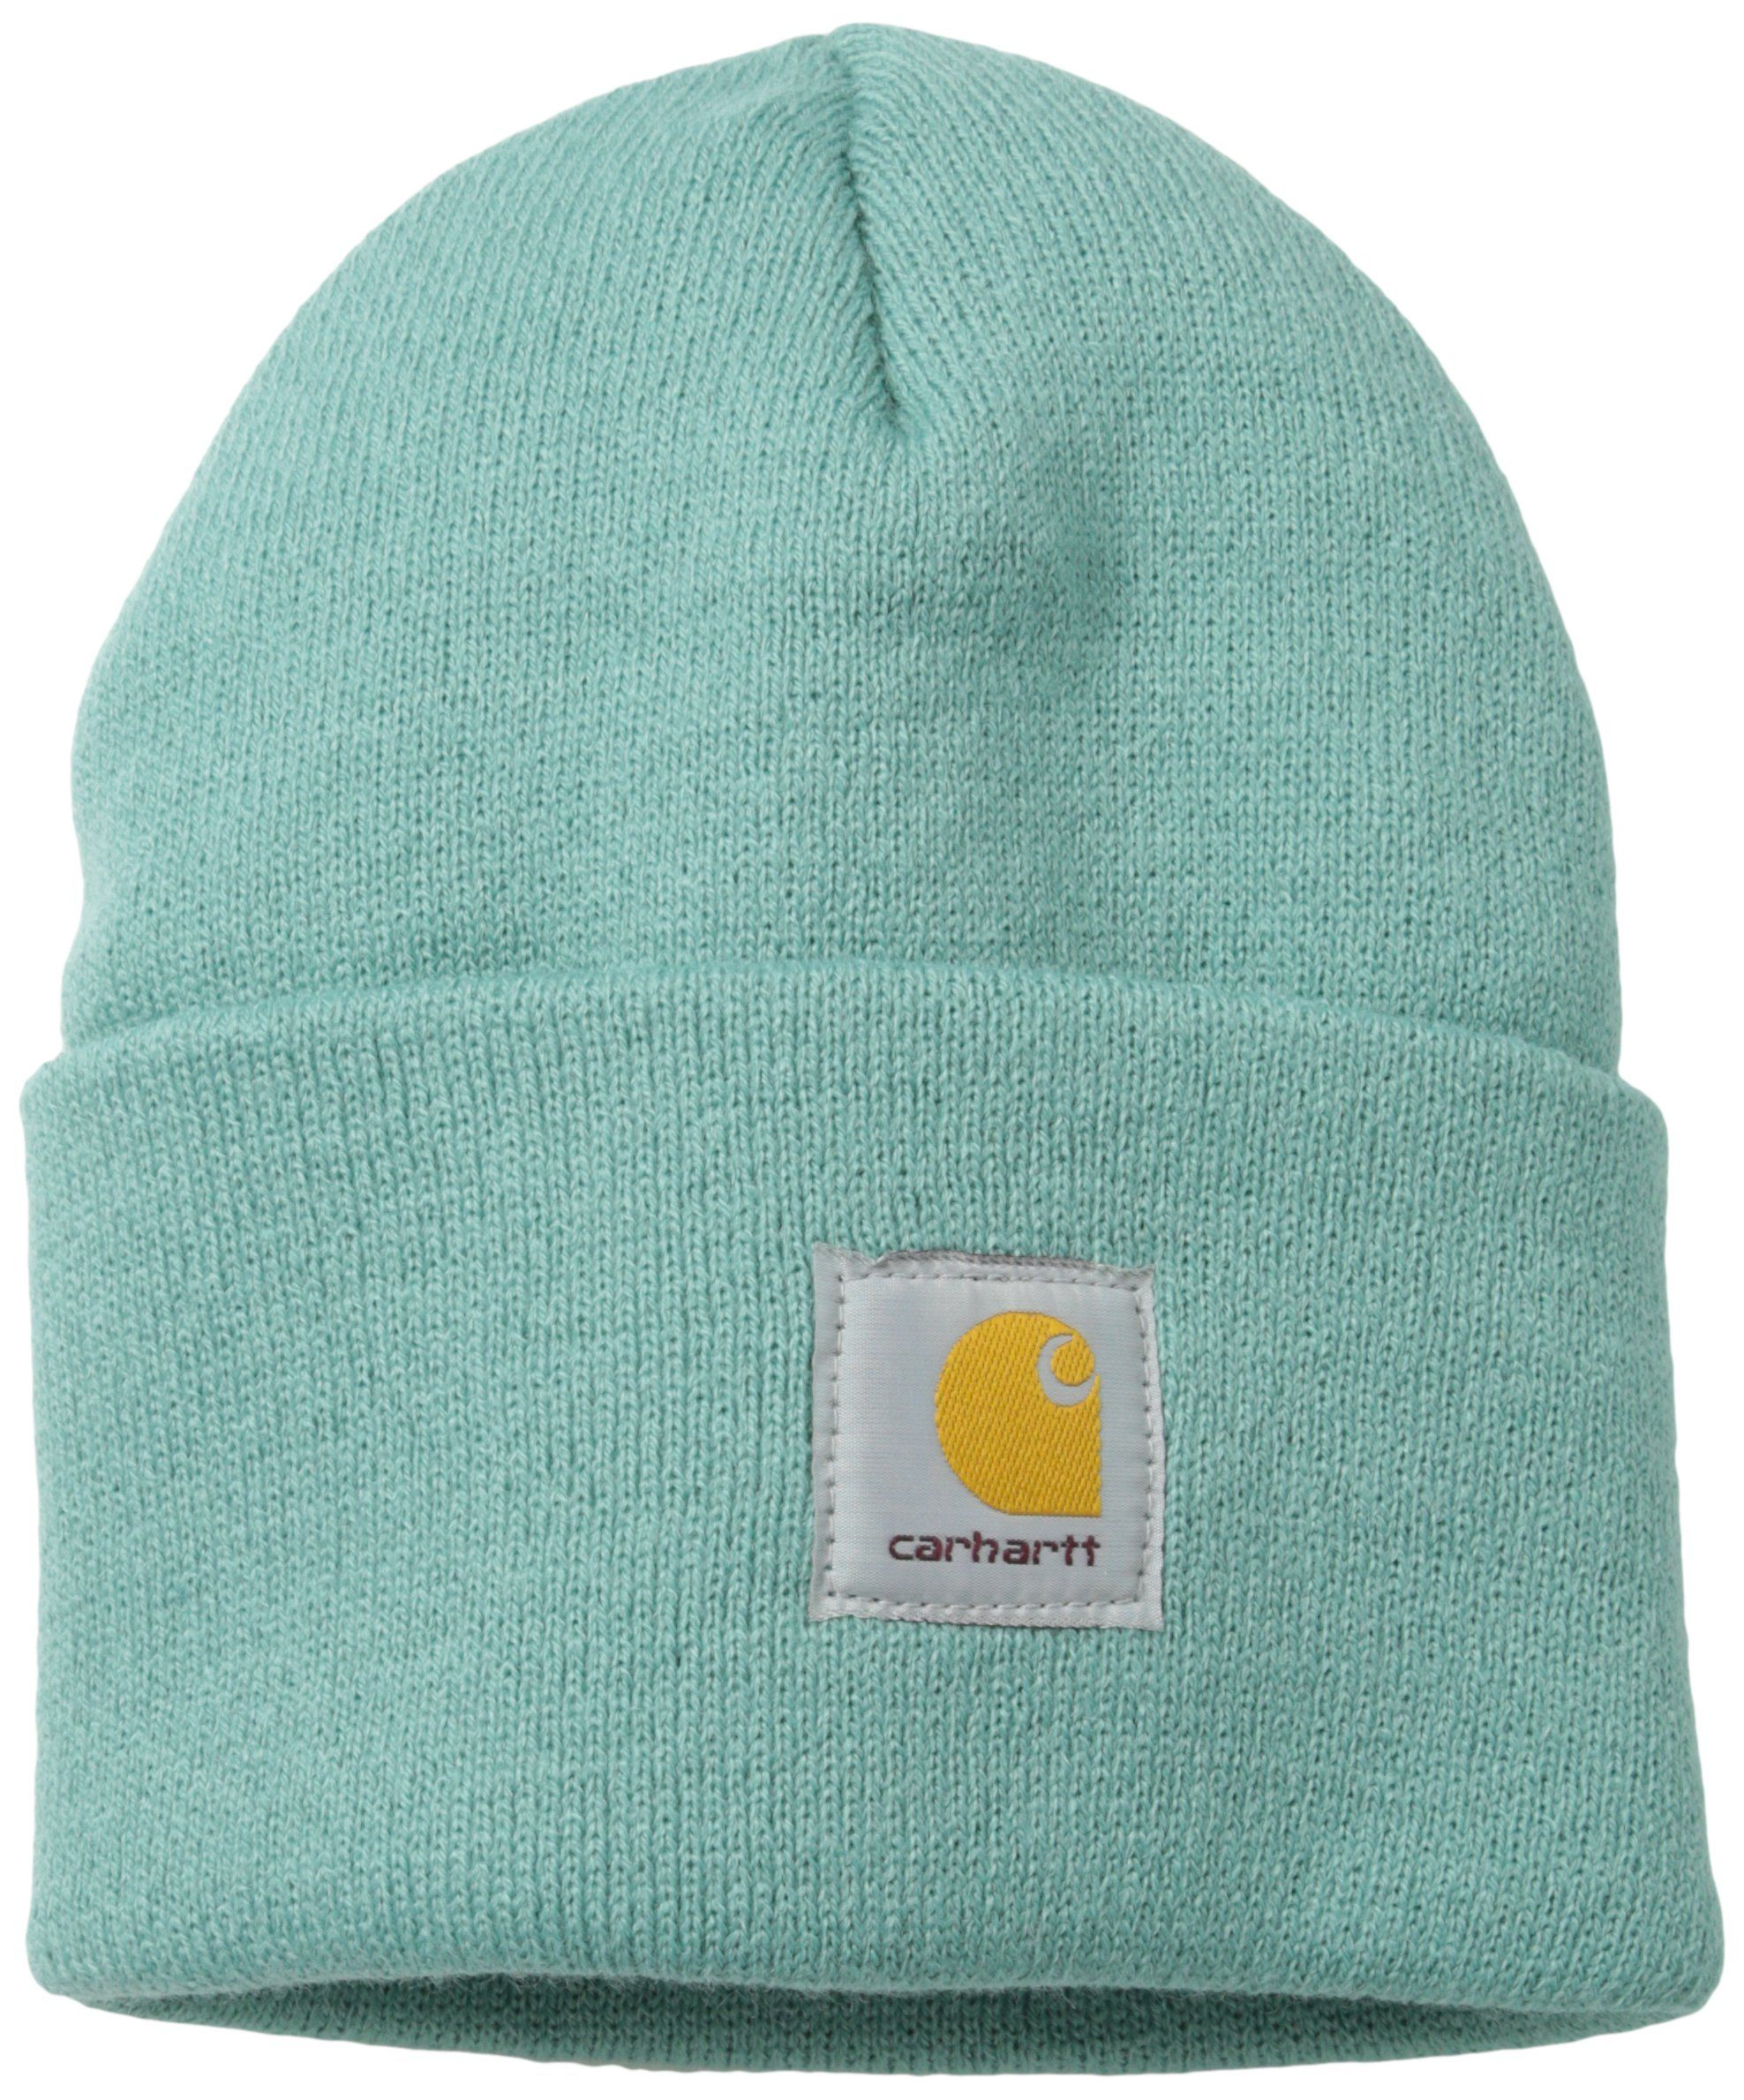 271ab4ee45eae Amazon.com  Carhartt Women s Knit Beanie Hat